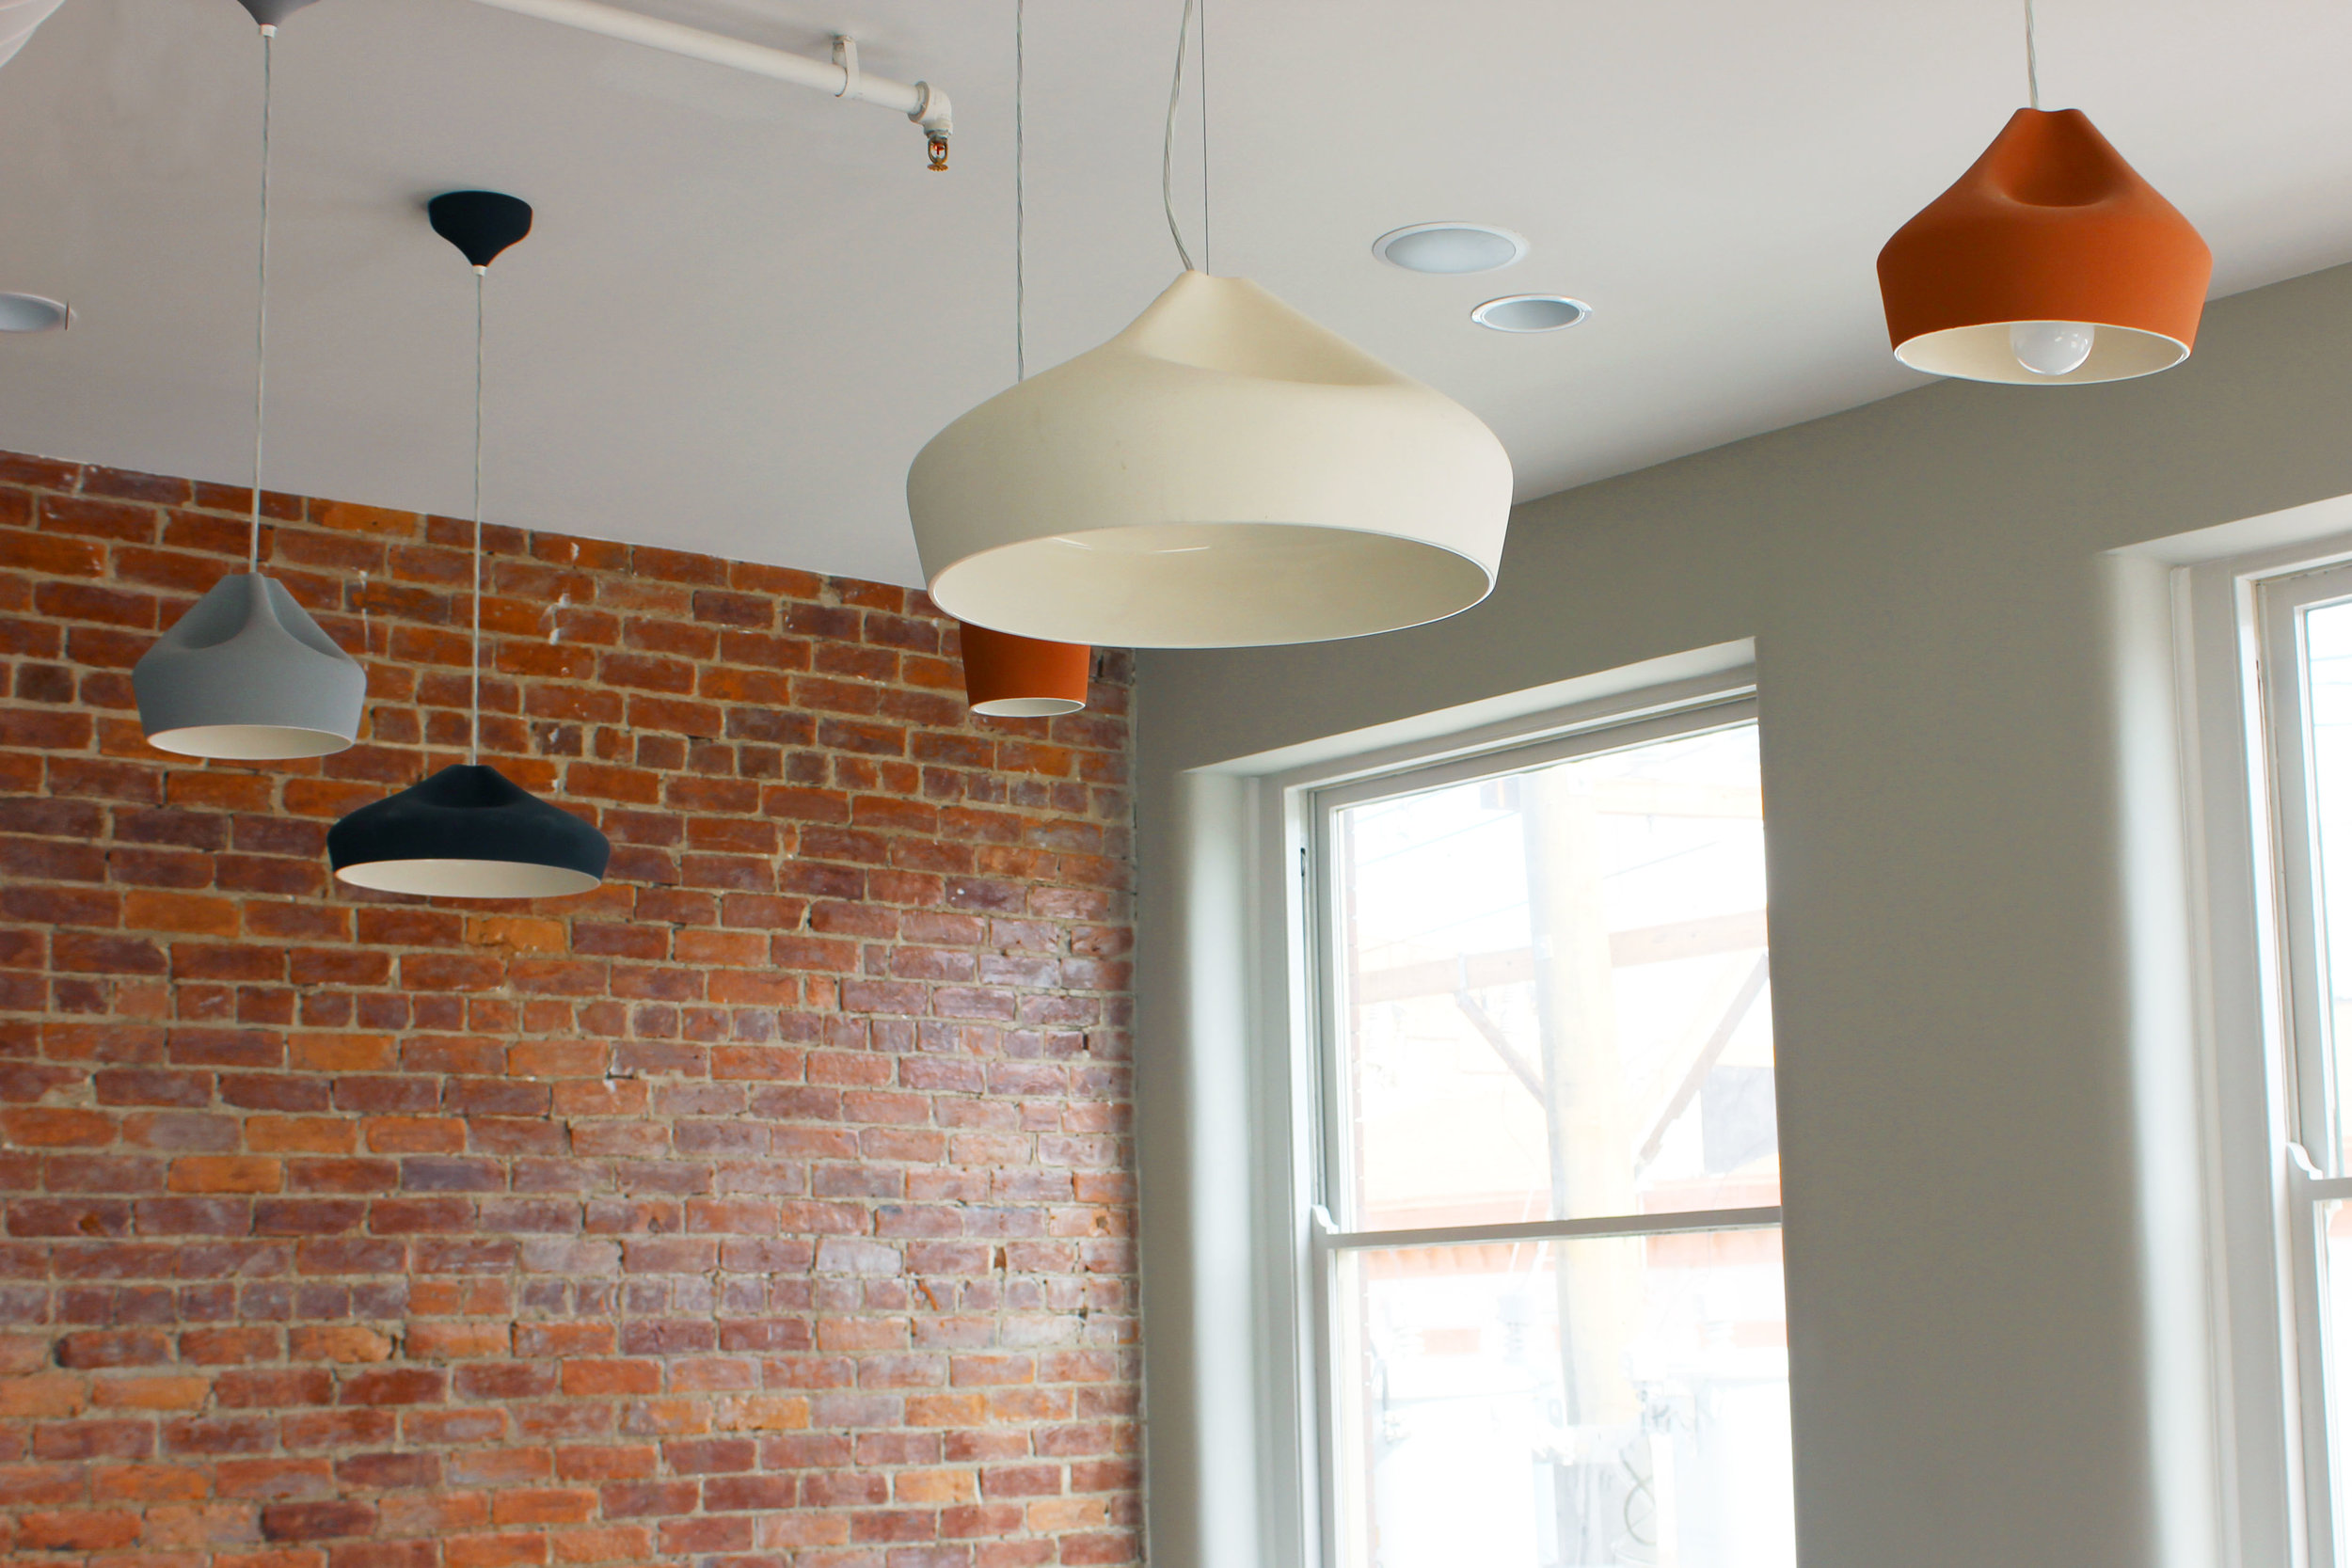 All Globe lighting compliments of  S  witch  Lighting (on Vine).Check them out.